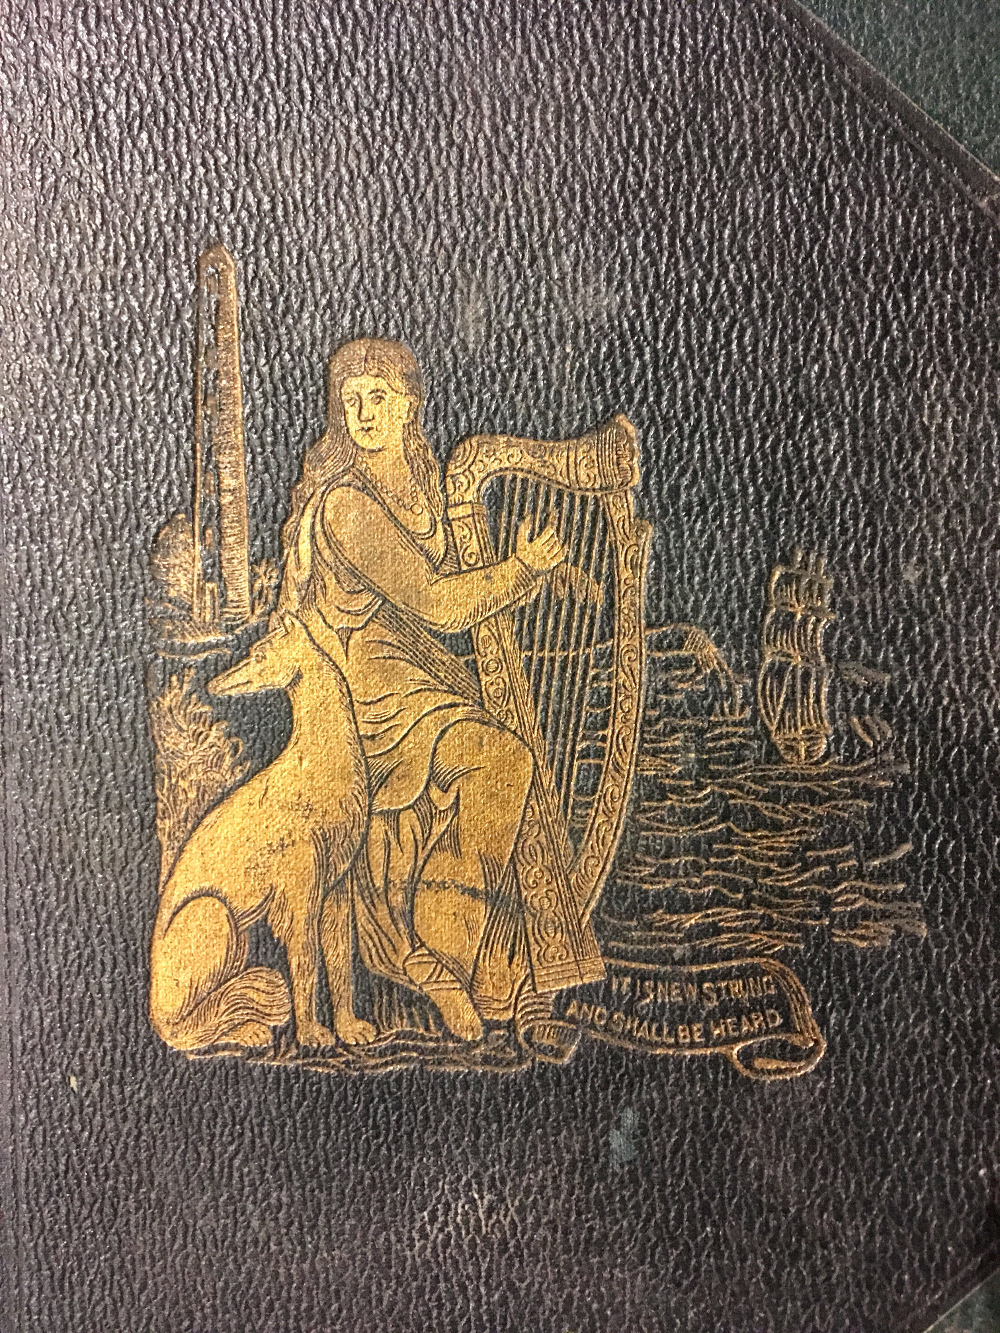 Book cover detail showing a harper embossed in gold.